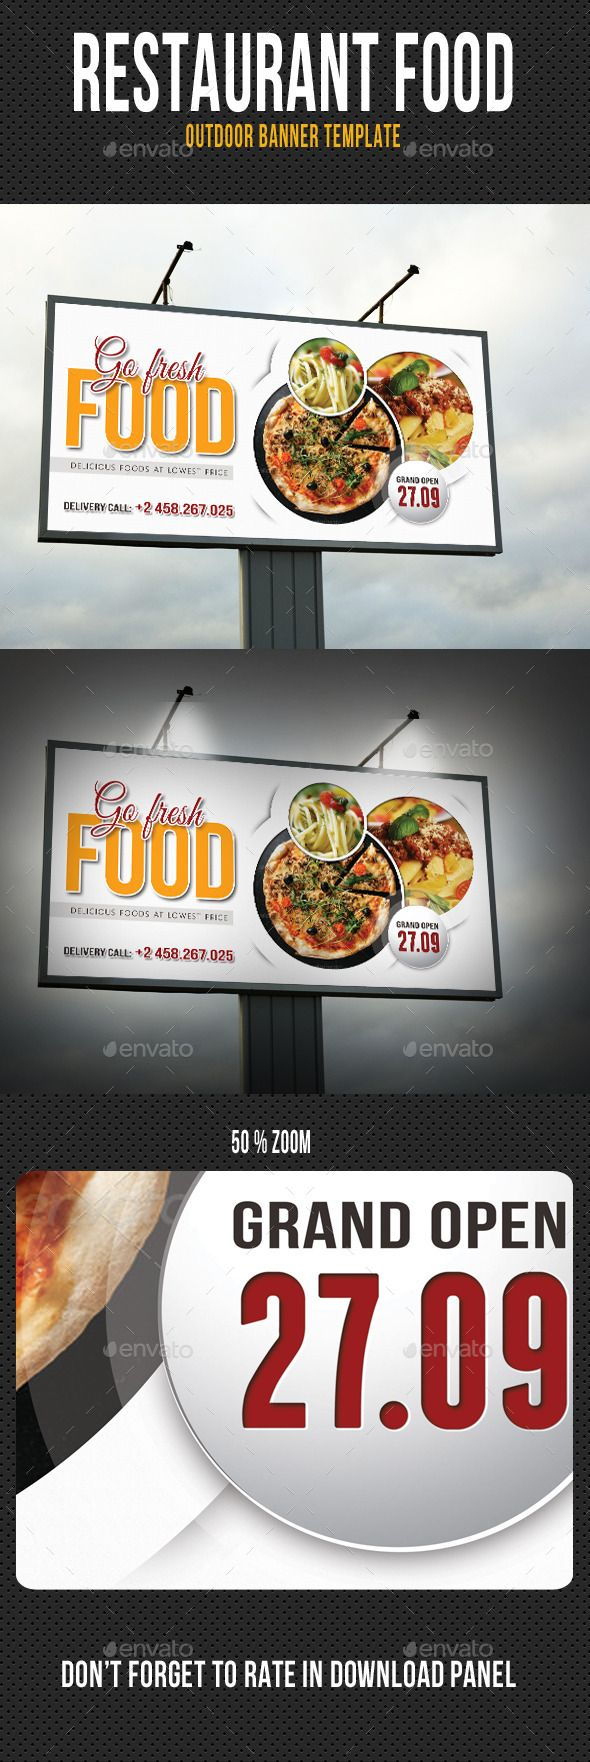 Restaurant Food Outdoor Banner Template #design Download: http://graphicriver.net/item/restaurant-food-outdoor-banner-template/13001661?ref=ksioks